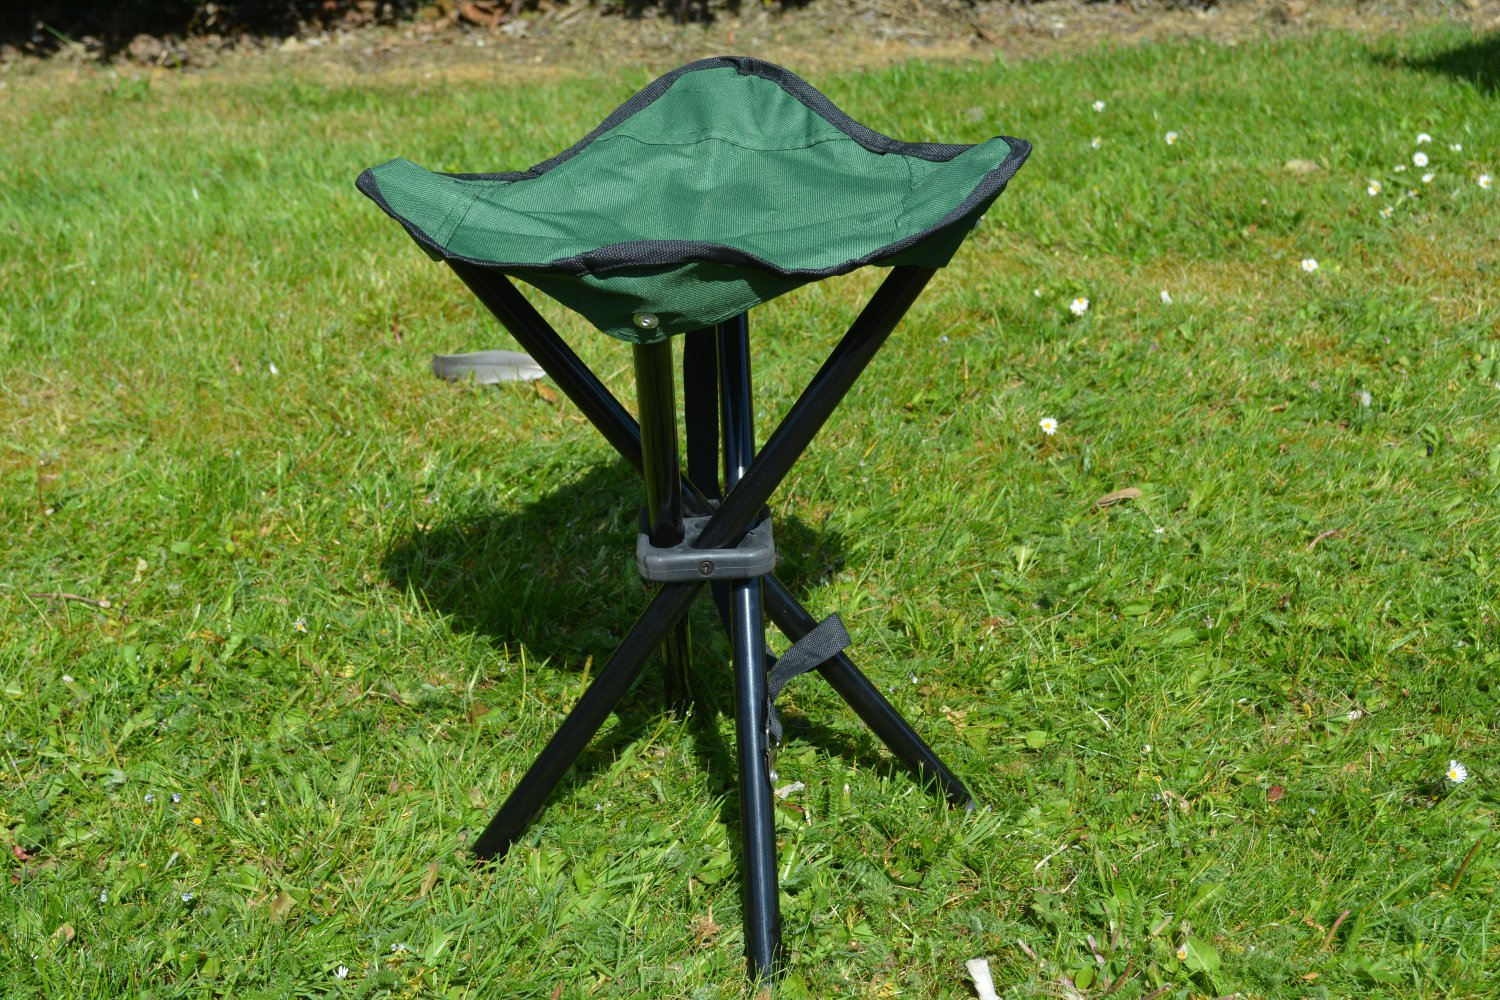 Camping stool with 4 legs, great for camping, BBQs and Festivals